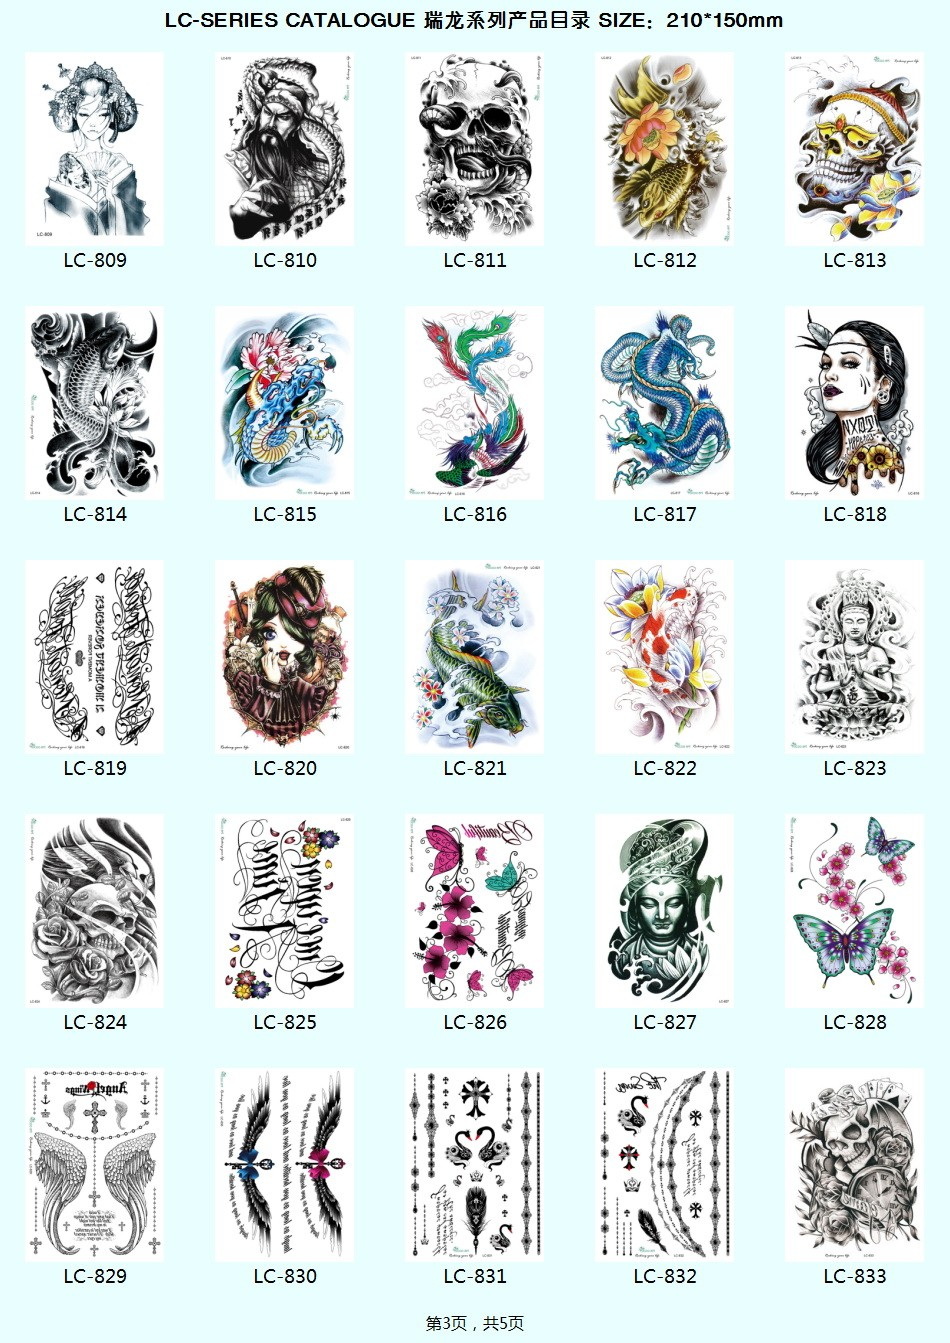 5f197ee98c187 LC 821/21*15cm 3D Large Big Tatoo Sticker Sketch Green Fish Drawing Designs  Cool Temporary Tattoo Stickers High Resolution Taty-in Temporary Tattoos  from ...